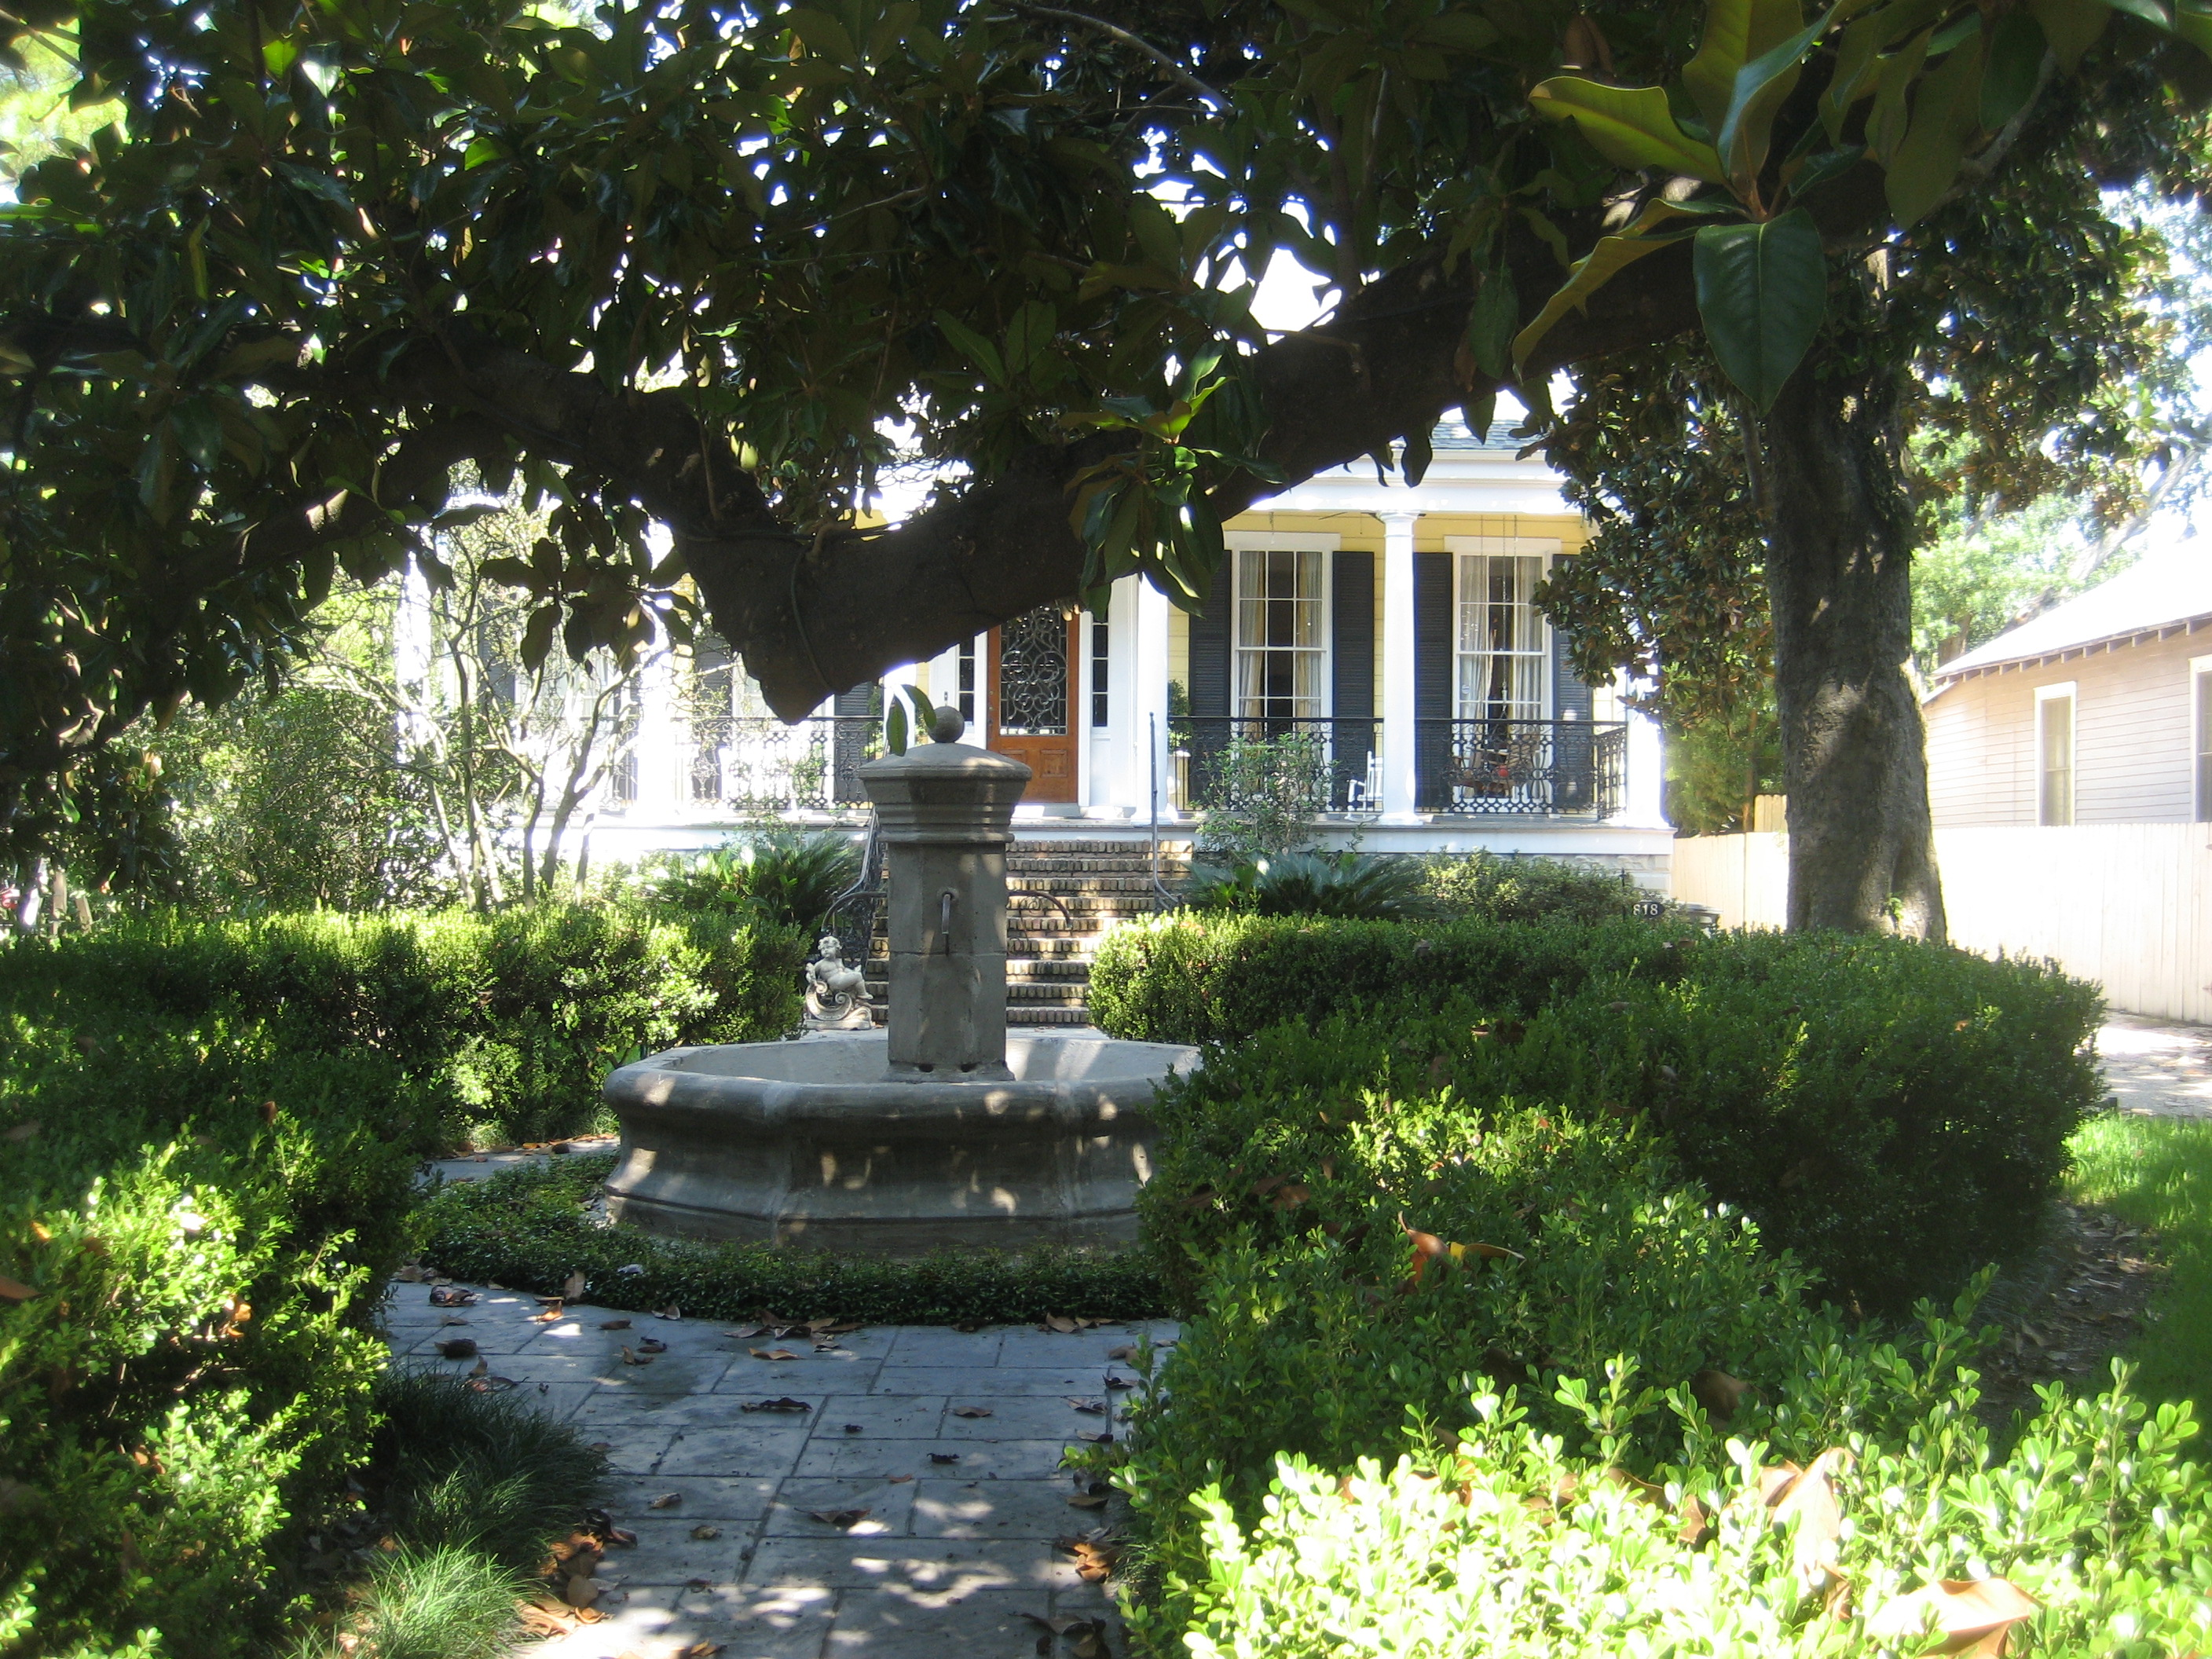 File:Carrollton Ave Front Yard Fountain Aug 2009.JPG